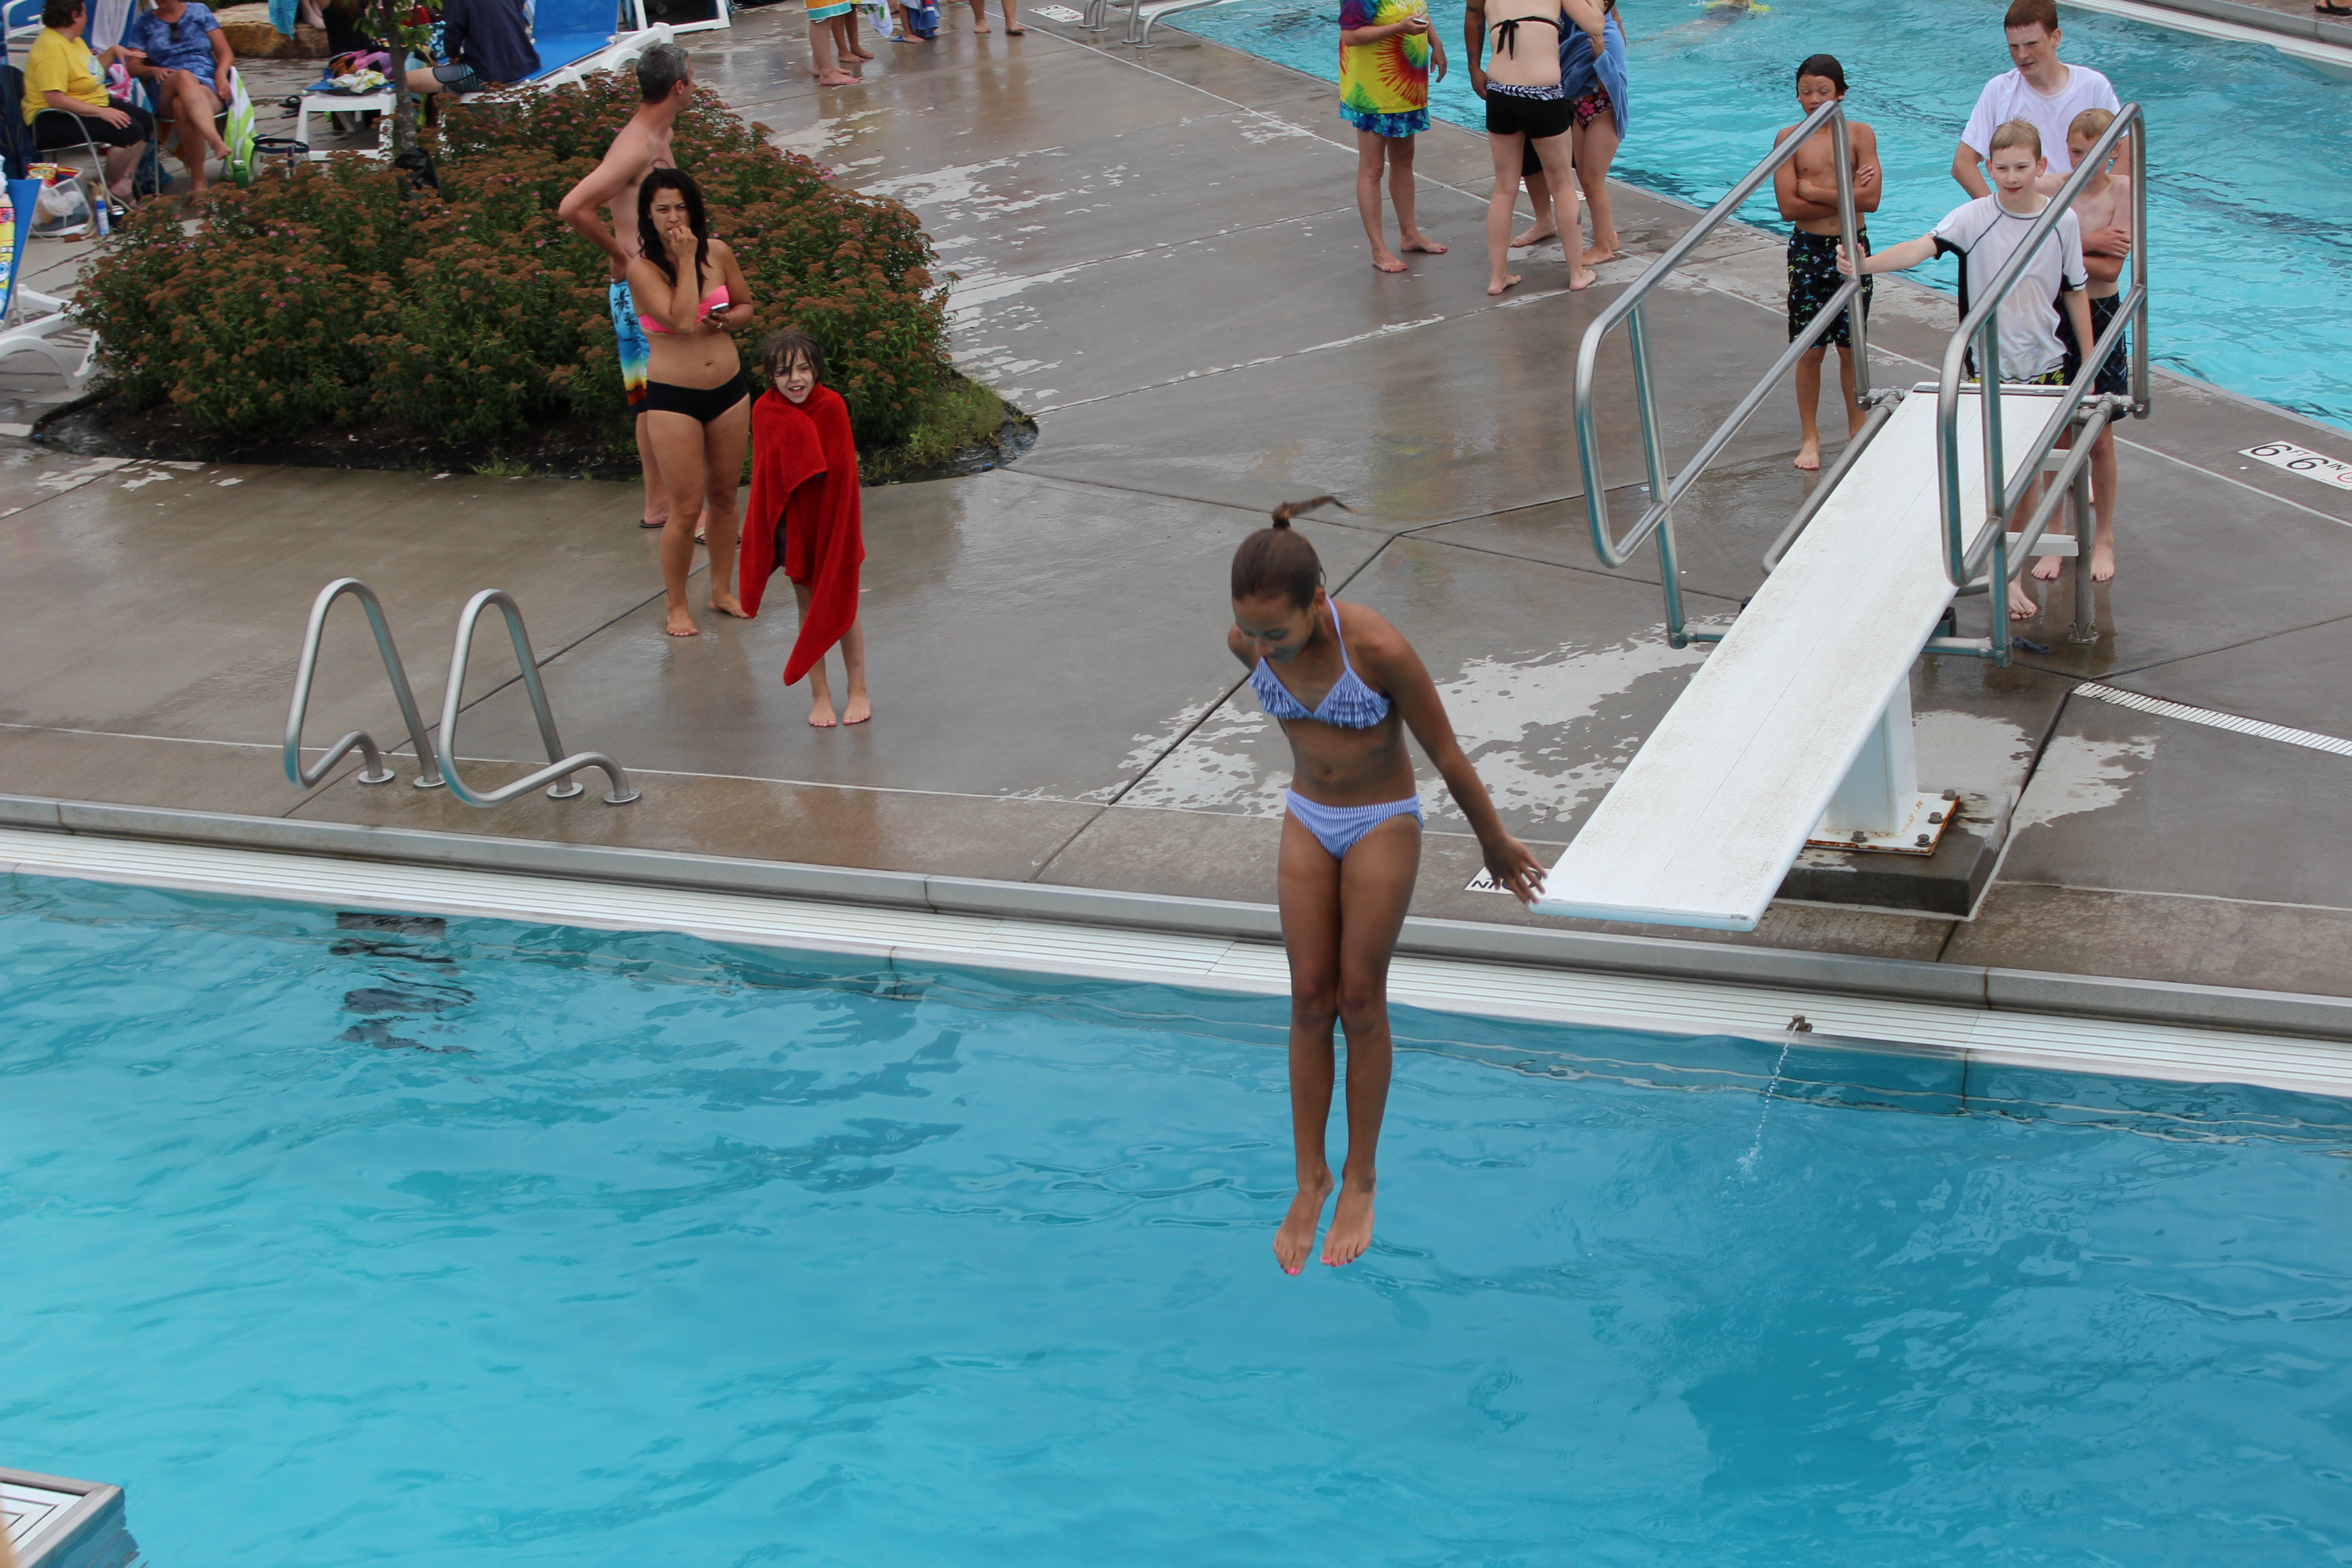 Como regional park pool saint paul minnesota for How to open a swimming pool in the spring